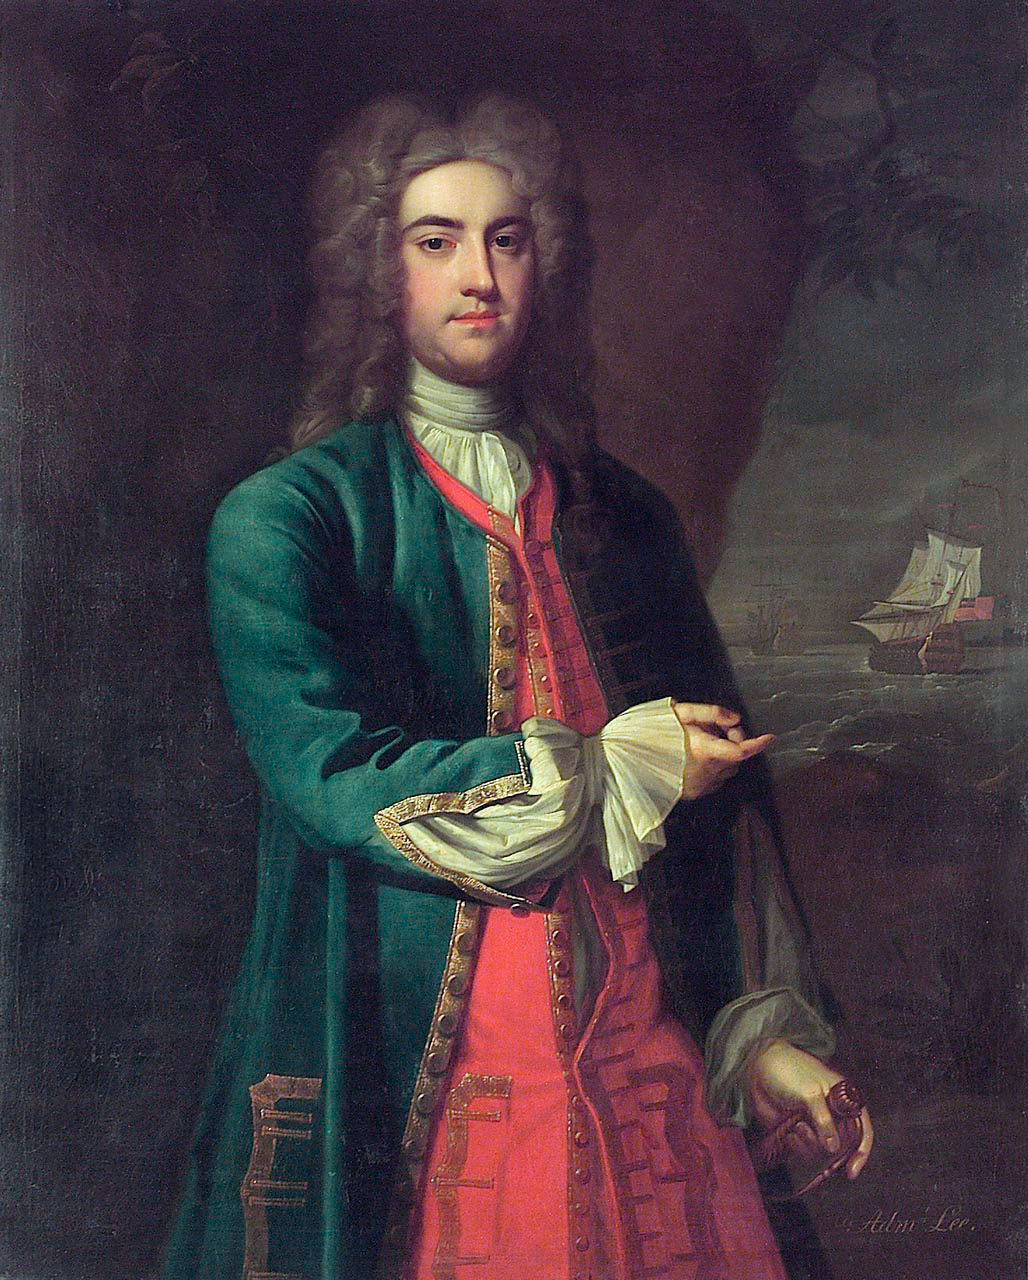 File:Vice-Admiral Fitzroy Henry Lee (1699-1750), by British